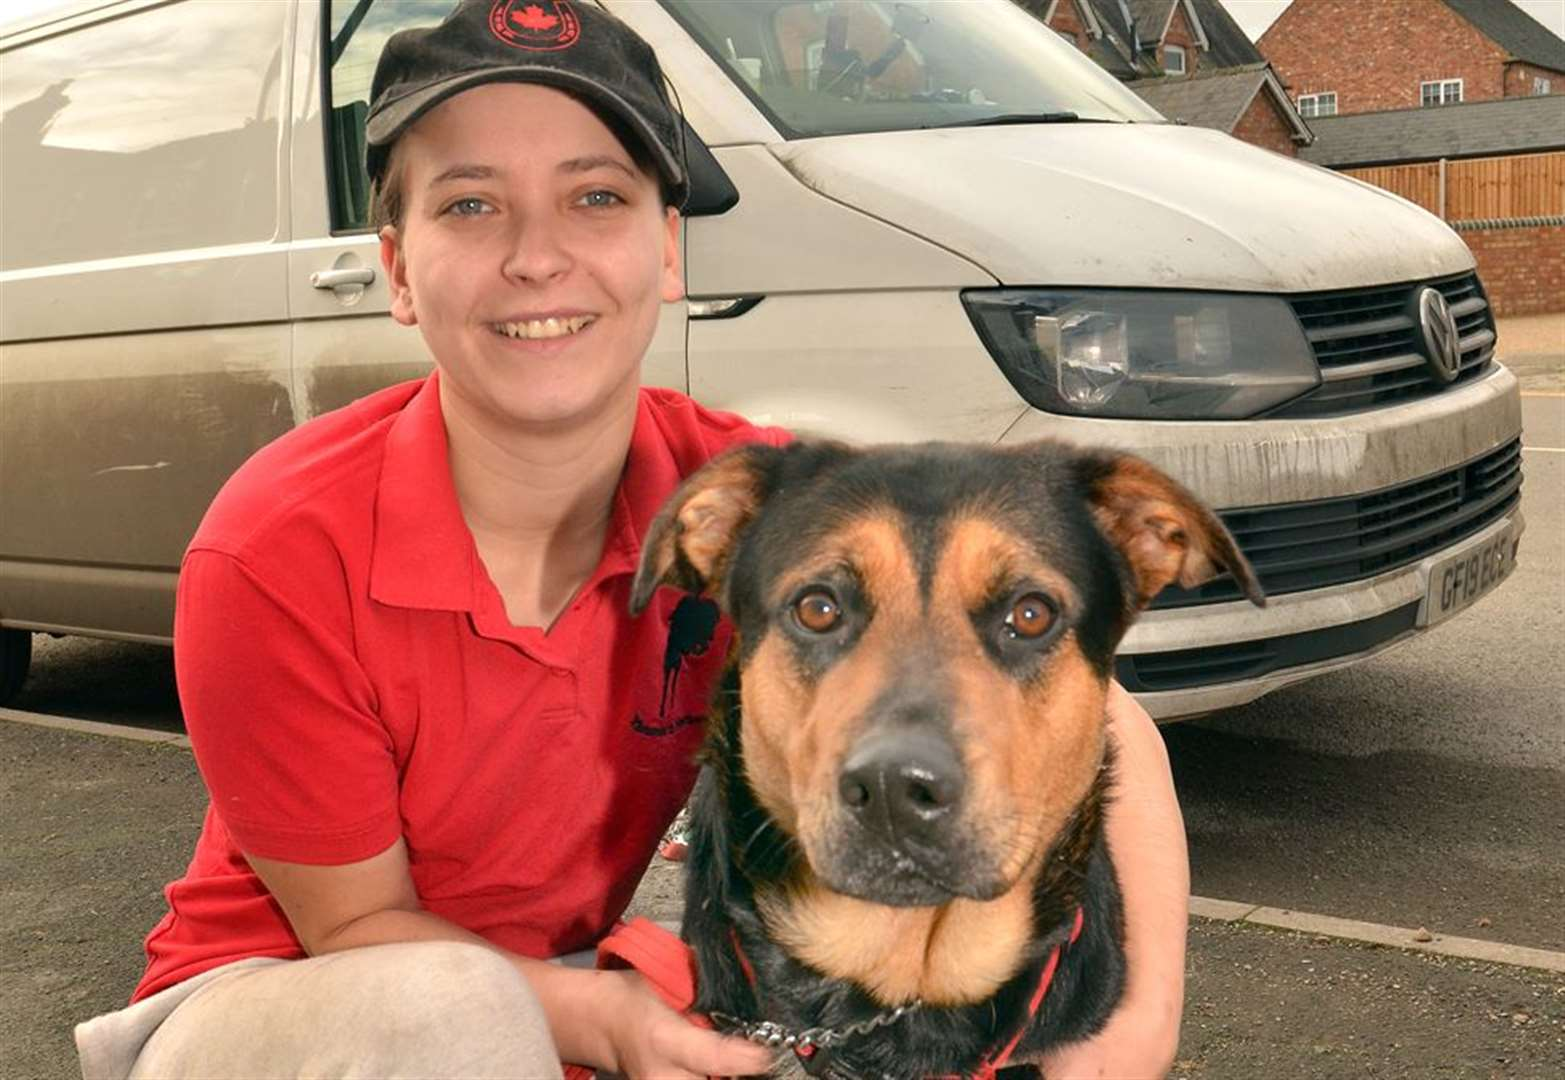 Hero dog foils thief's attempt to steal van